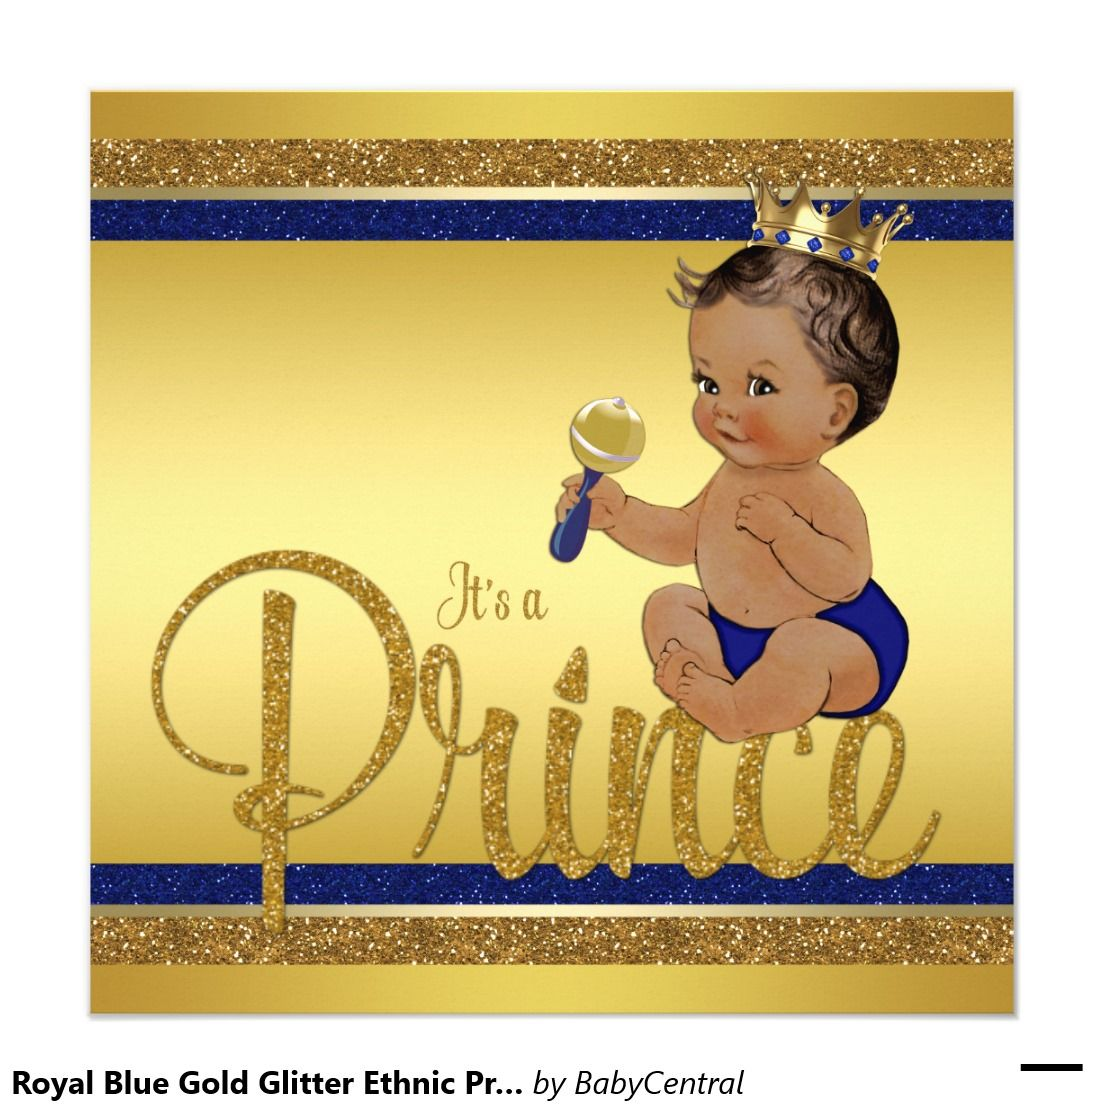 Royal Blue Gold Glitter Ethnic Prince Baby Shower Invitation | Blue ...